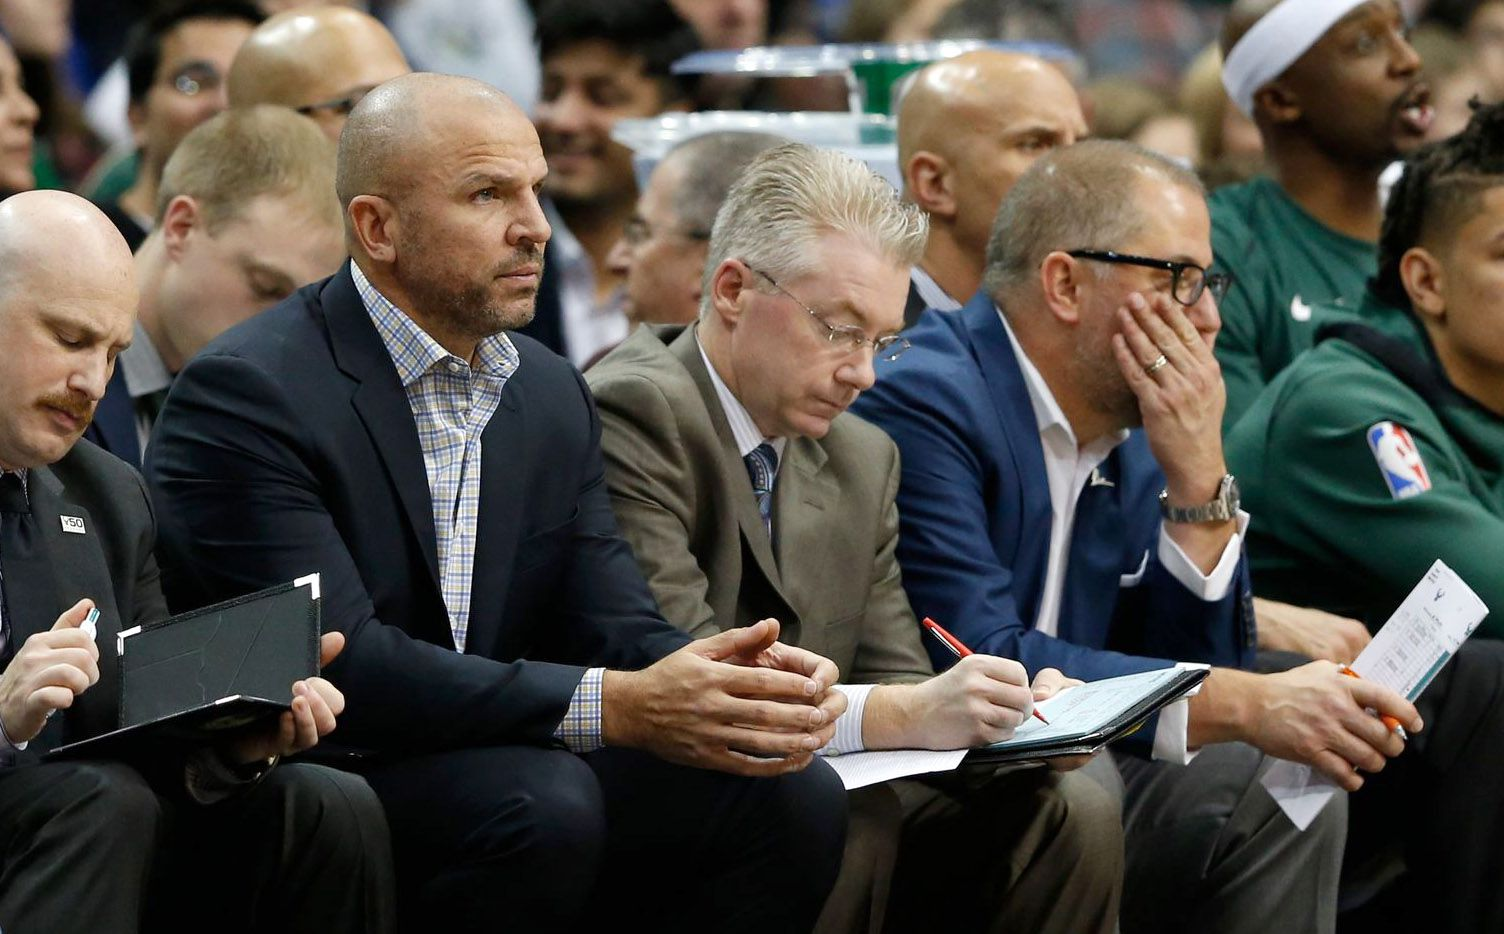 Milwaukee Bucks head coach Jason Kidd watches the game against the Dallas Mavericks during the first half of play at American Airlines Arena in Dallas on Saturday, November 18, 2017.